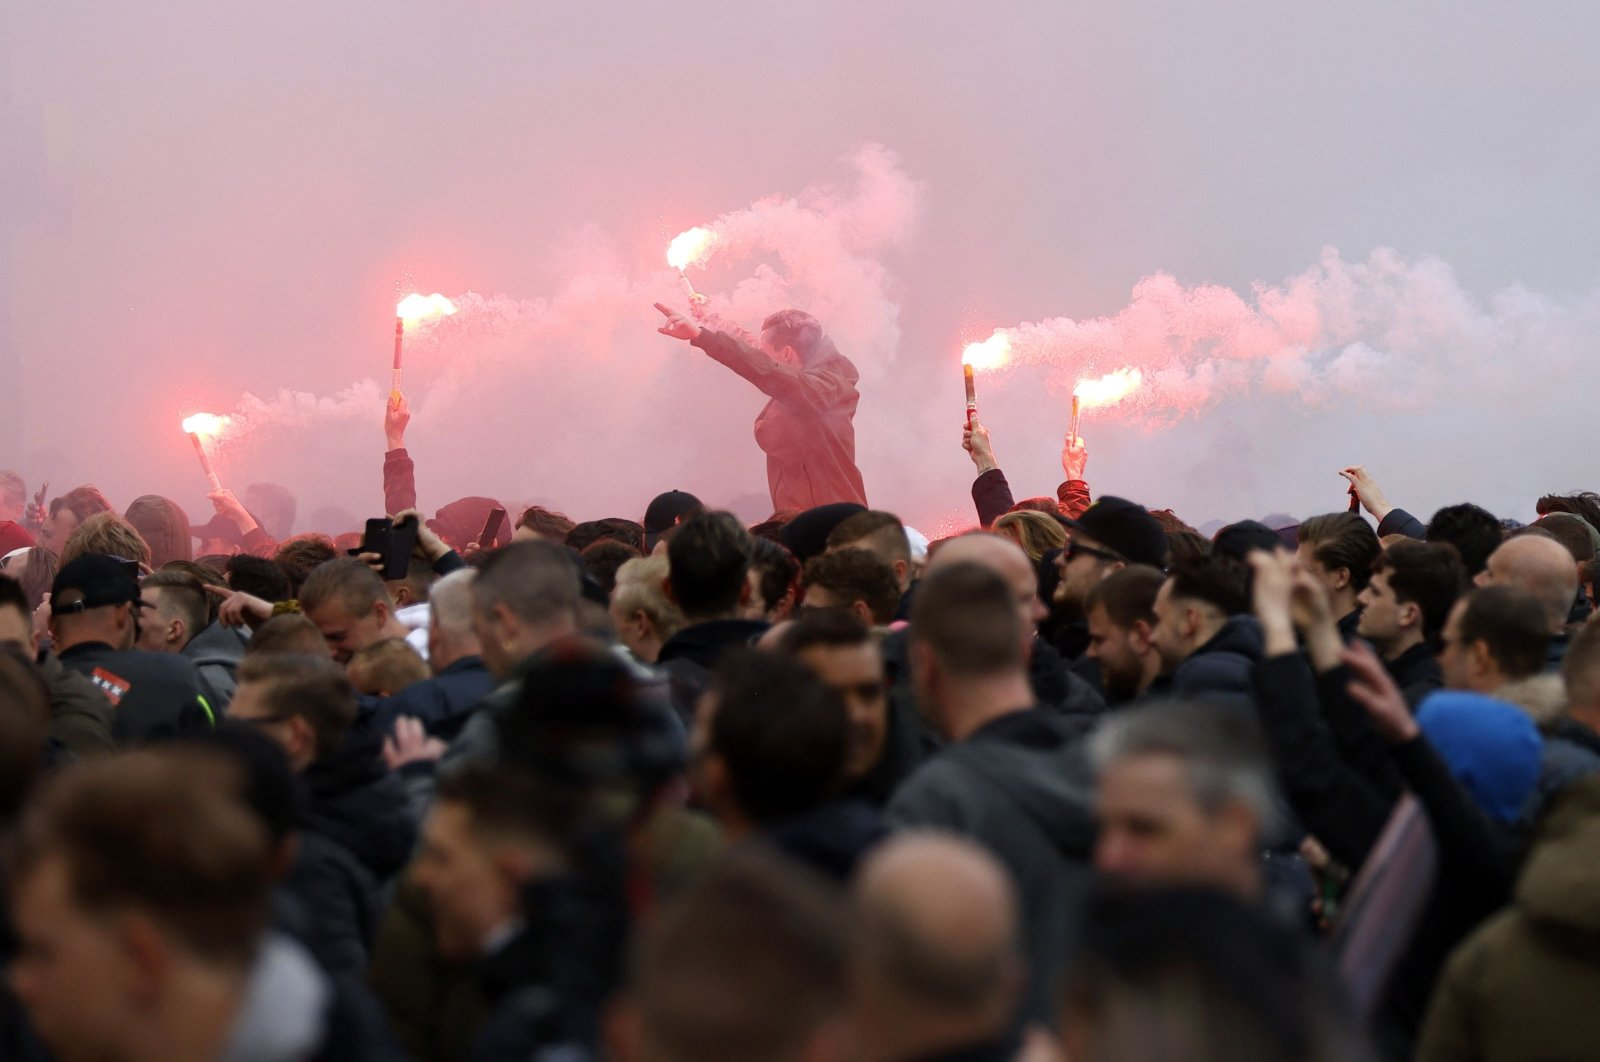 Ajax supporters burn flares in Amsterdam as they celebrate their team winning its 35th national title following the Dutch Eredivisie football match between Ajax Amsterdam and FC Emmen, Amsterdam, Netherlands, May 2, 2021. (AFP Photo)